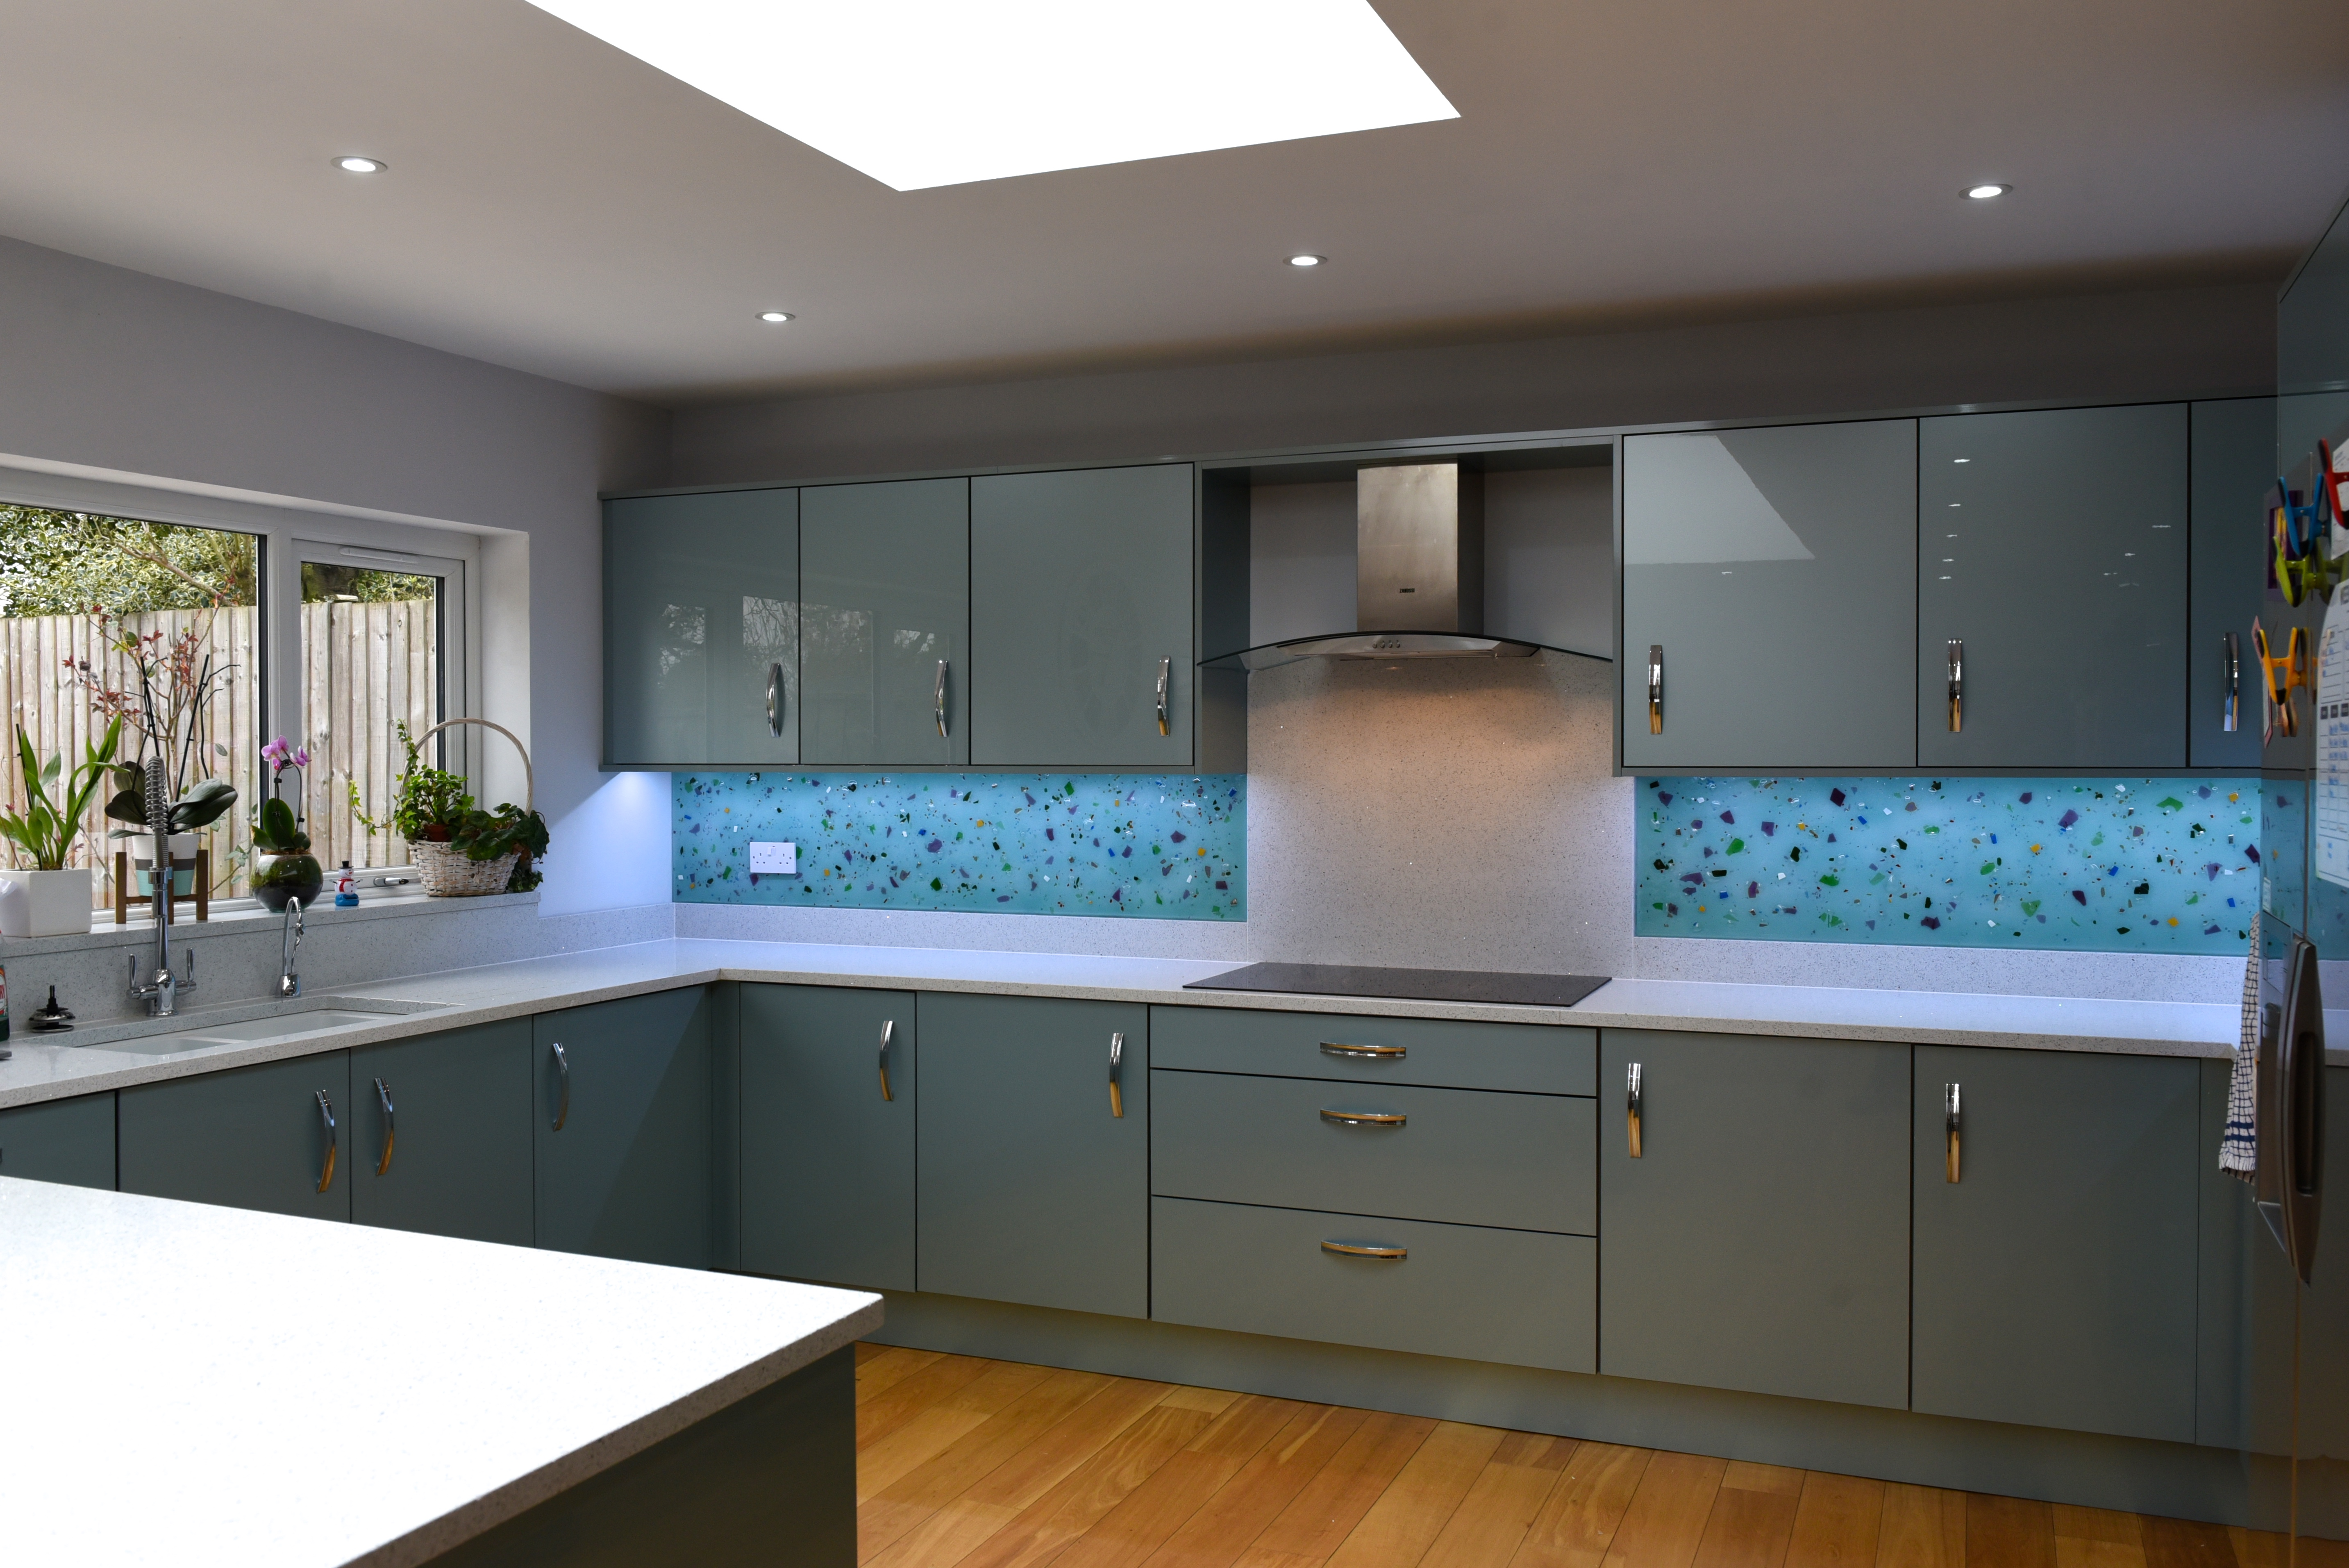 Kitchen Cupboard Painters Leicestershire Glass For Stoke Golding The House Of Ugly Fish Bespoke Splashbacks